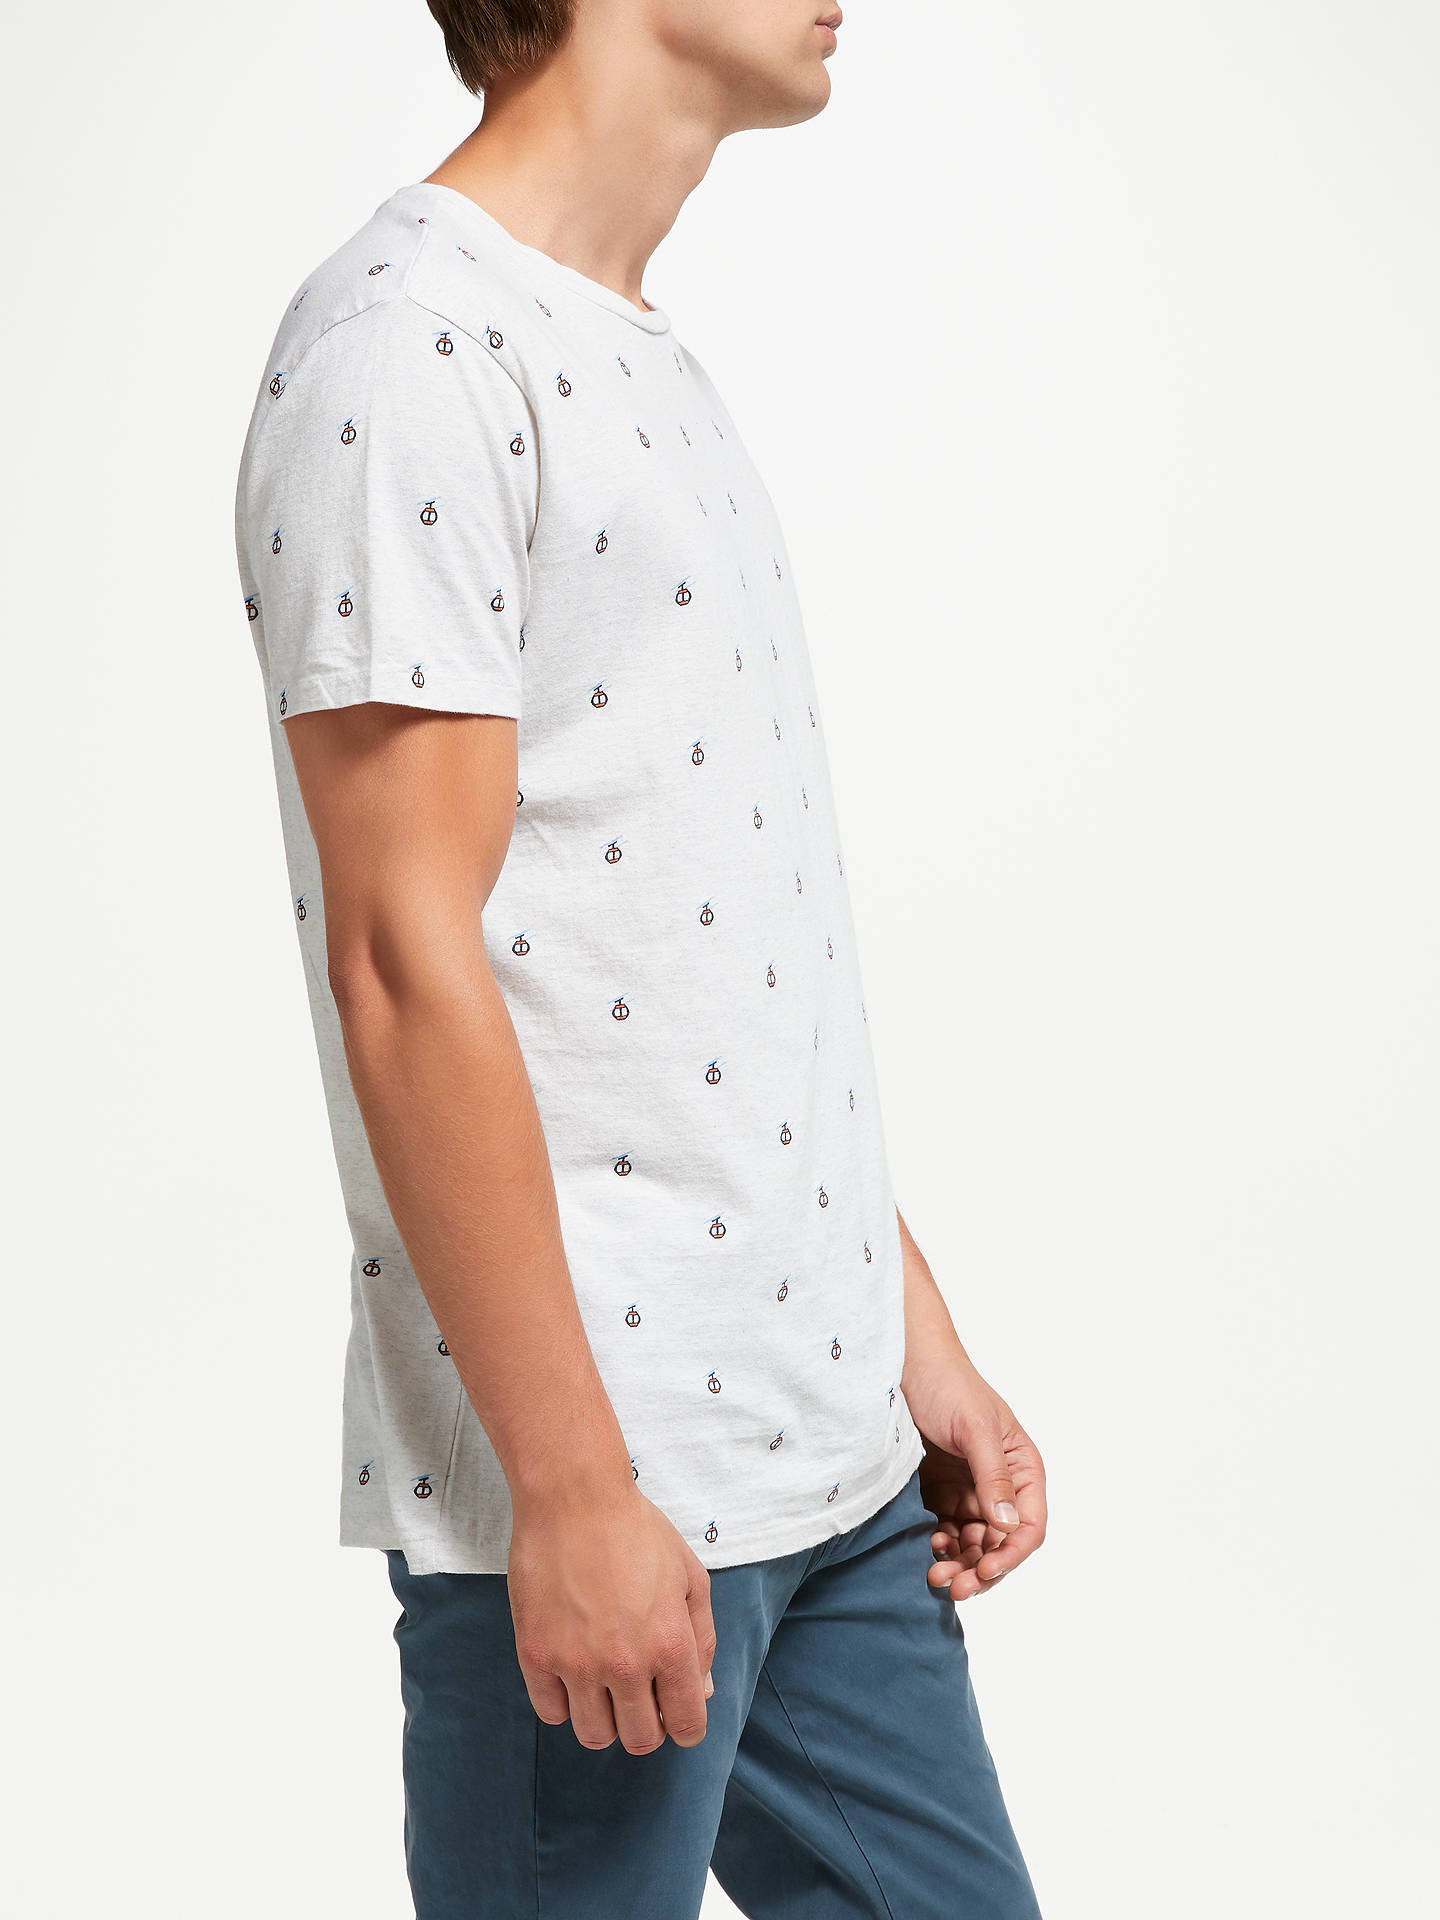 BuyScotch & Soda Crew Neck Jersey T-Shirt, Grey, S Online at johnlewis.com